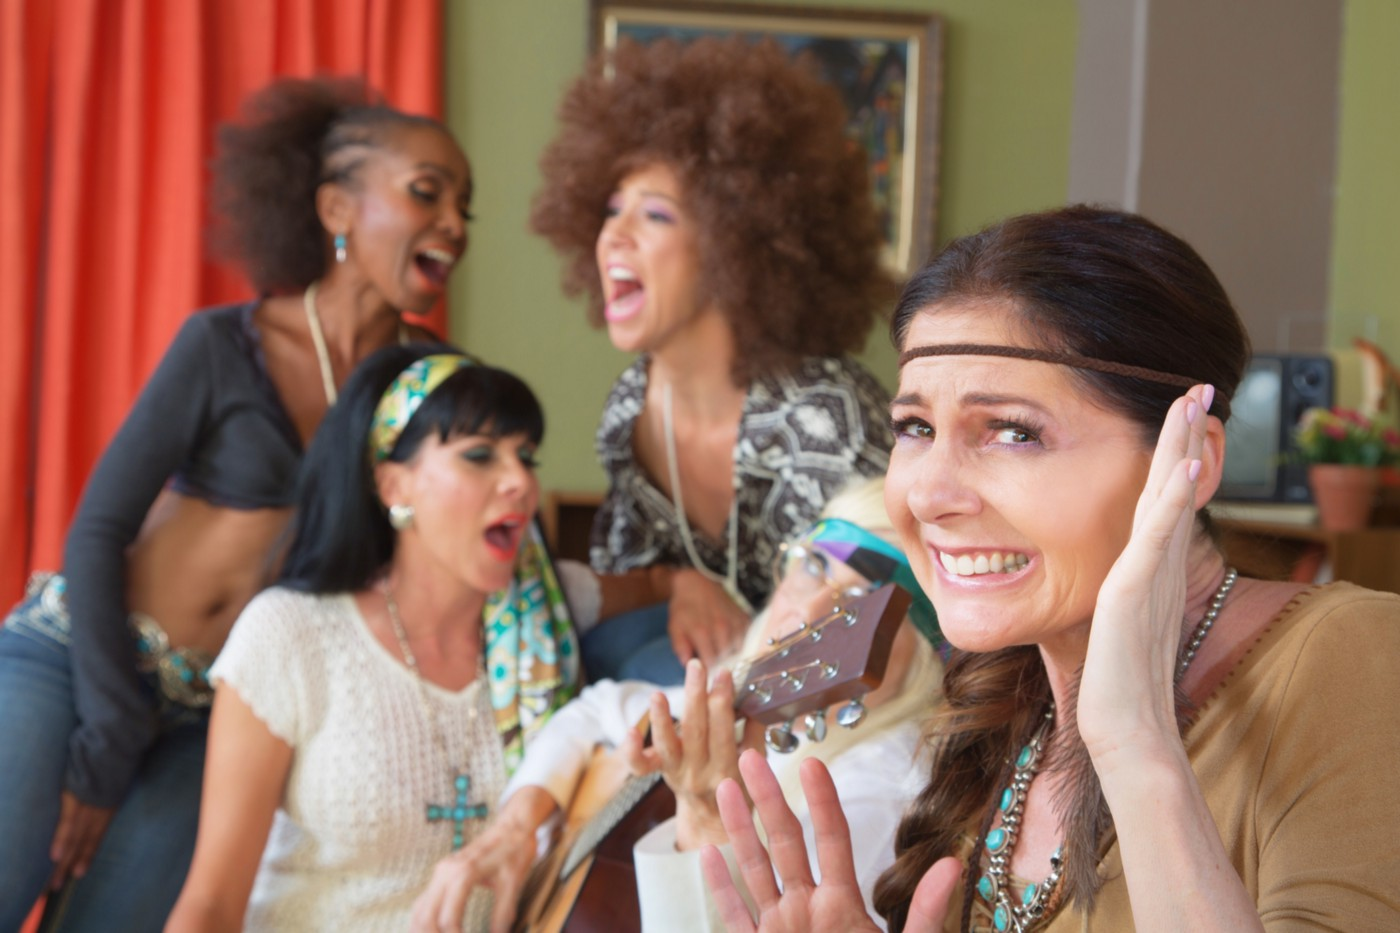 Woman in hippie-style costume smiling awkwardly as three women sing behind her